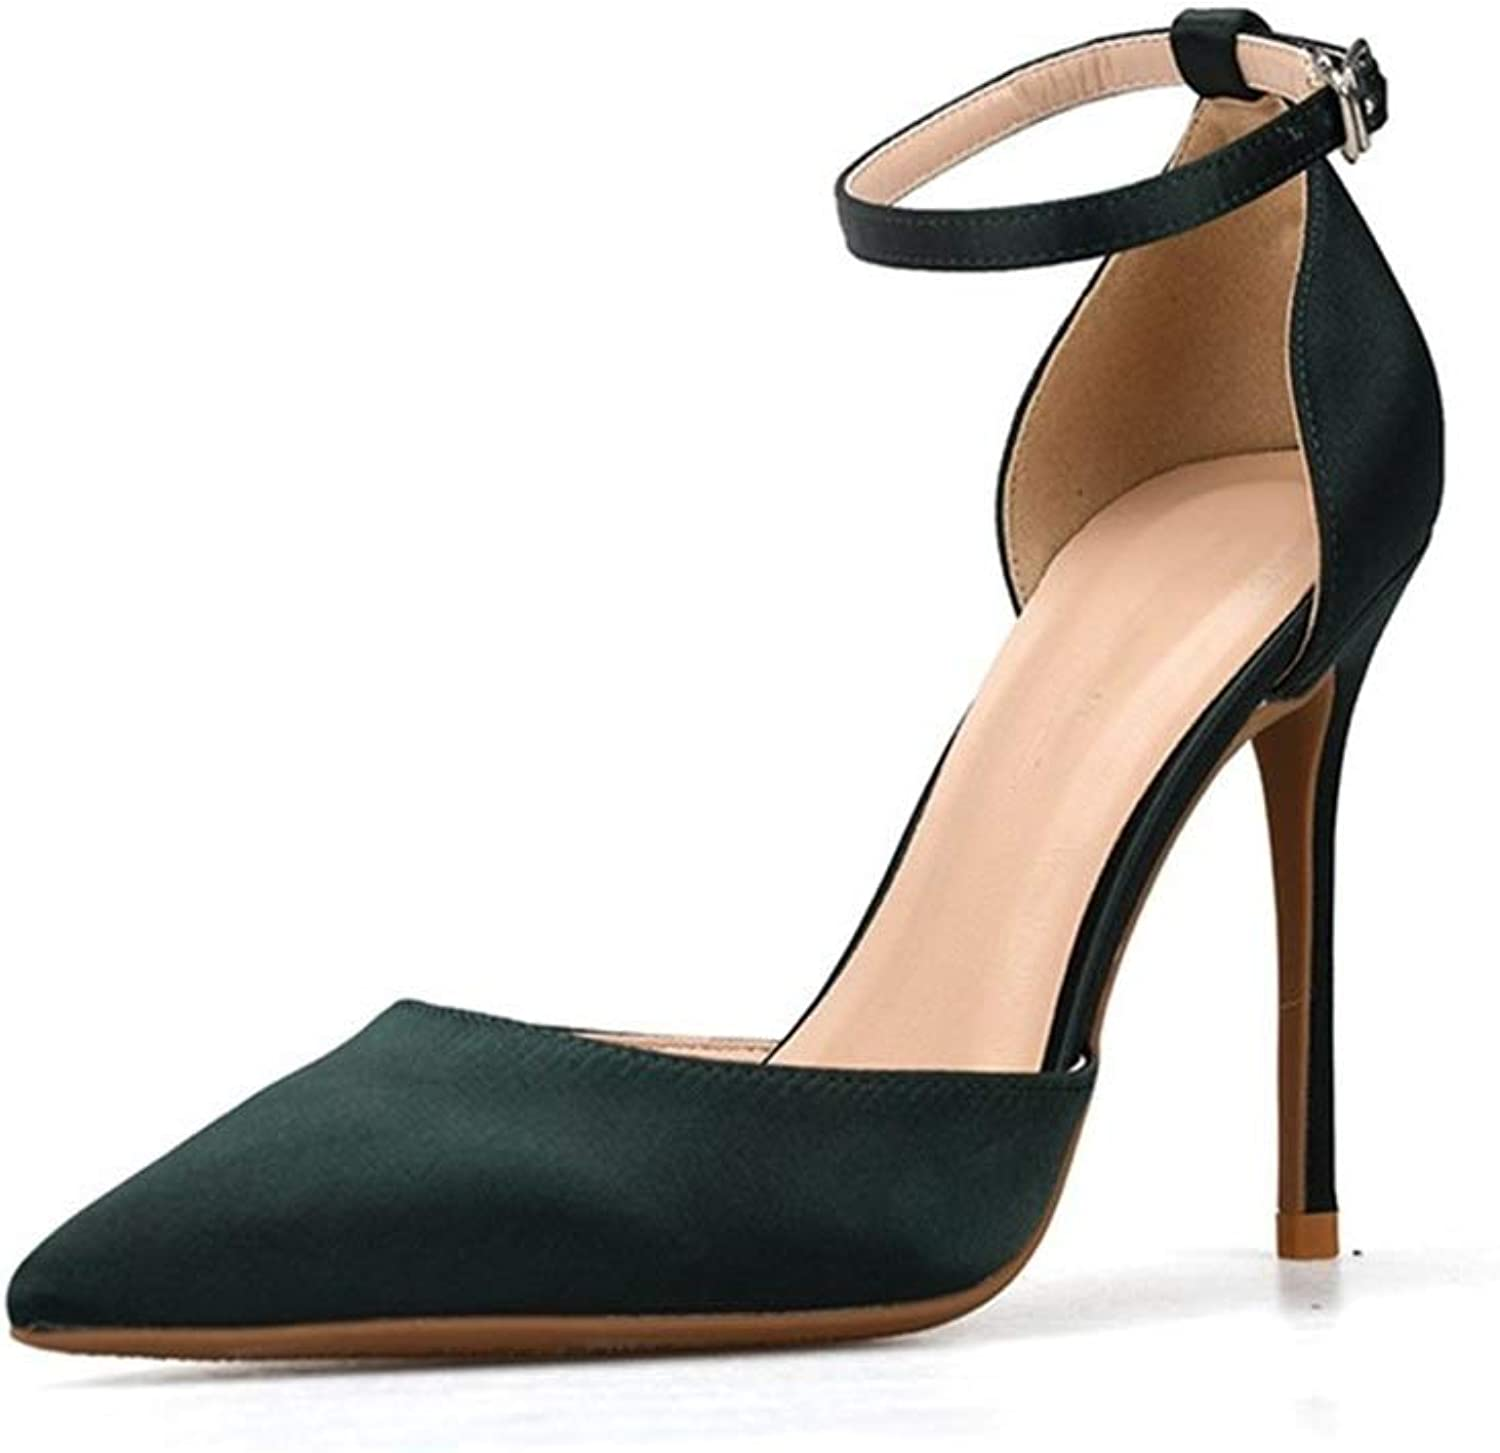 ZerenQ Ankle Strap Sandals for Women Stiletto 6cm High Heeled Pumps Side Cut Pointed shoes for Ladies (color   Black, Size   33 EU)